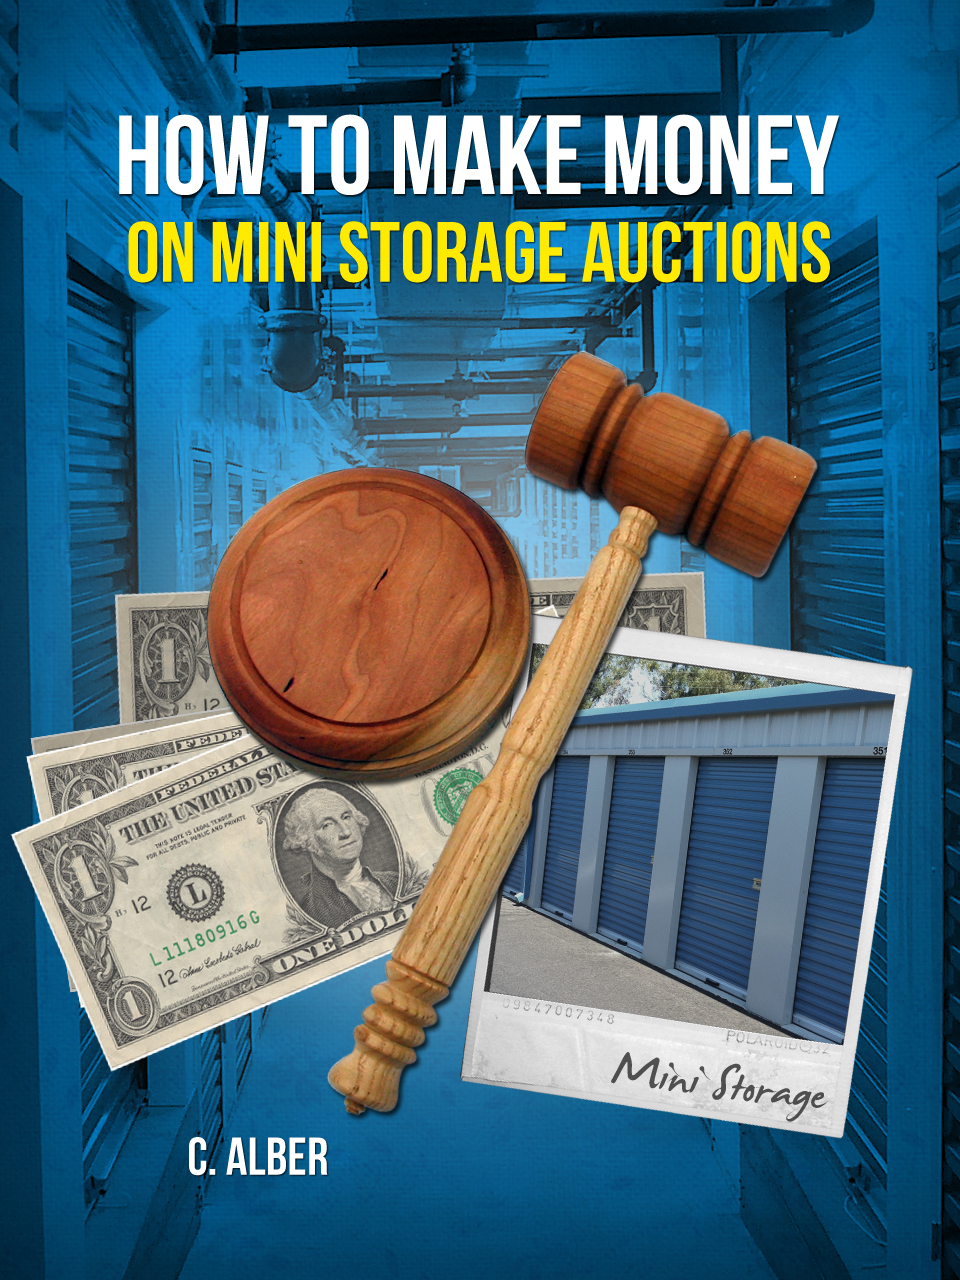 How to Make Money on Mini Storage Auctions